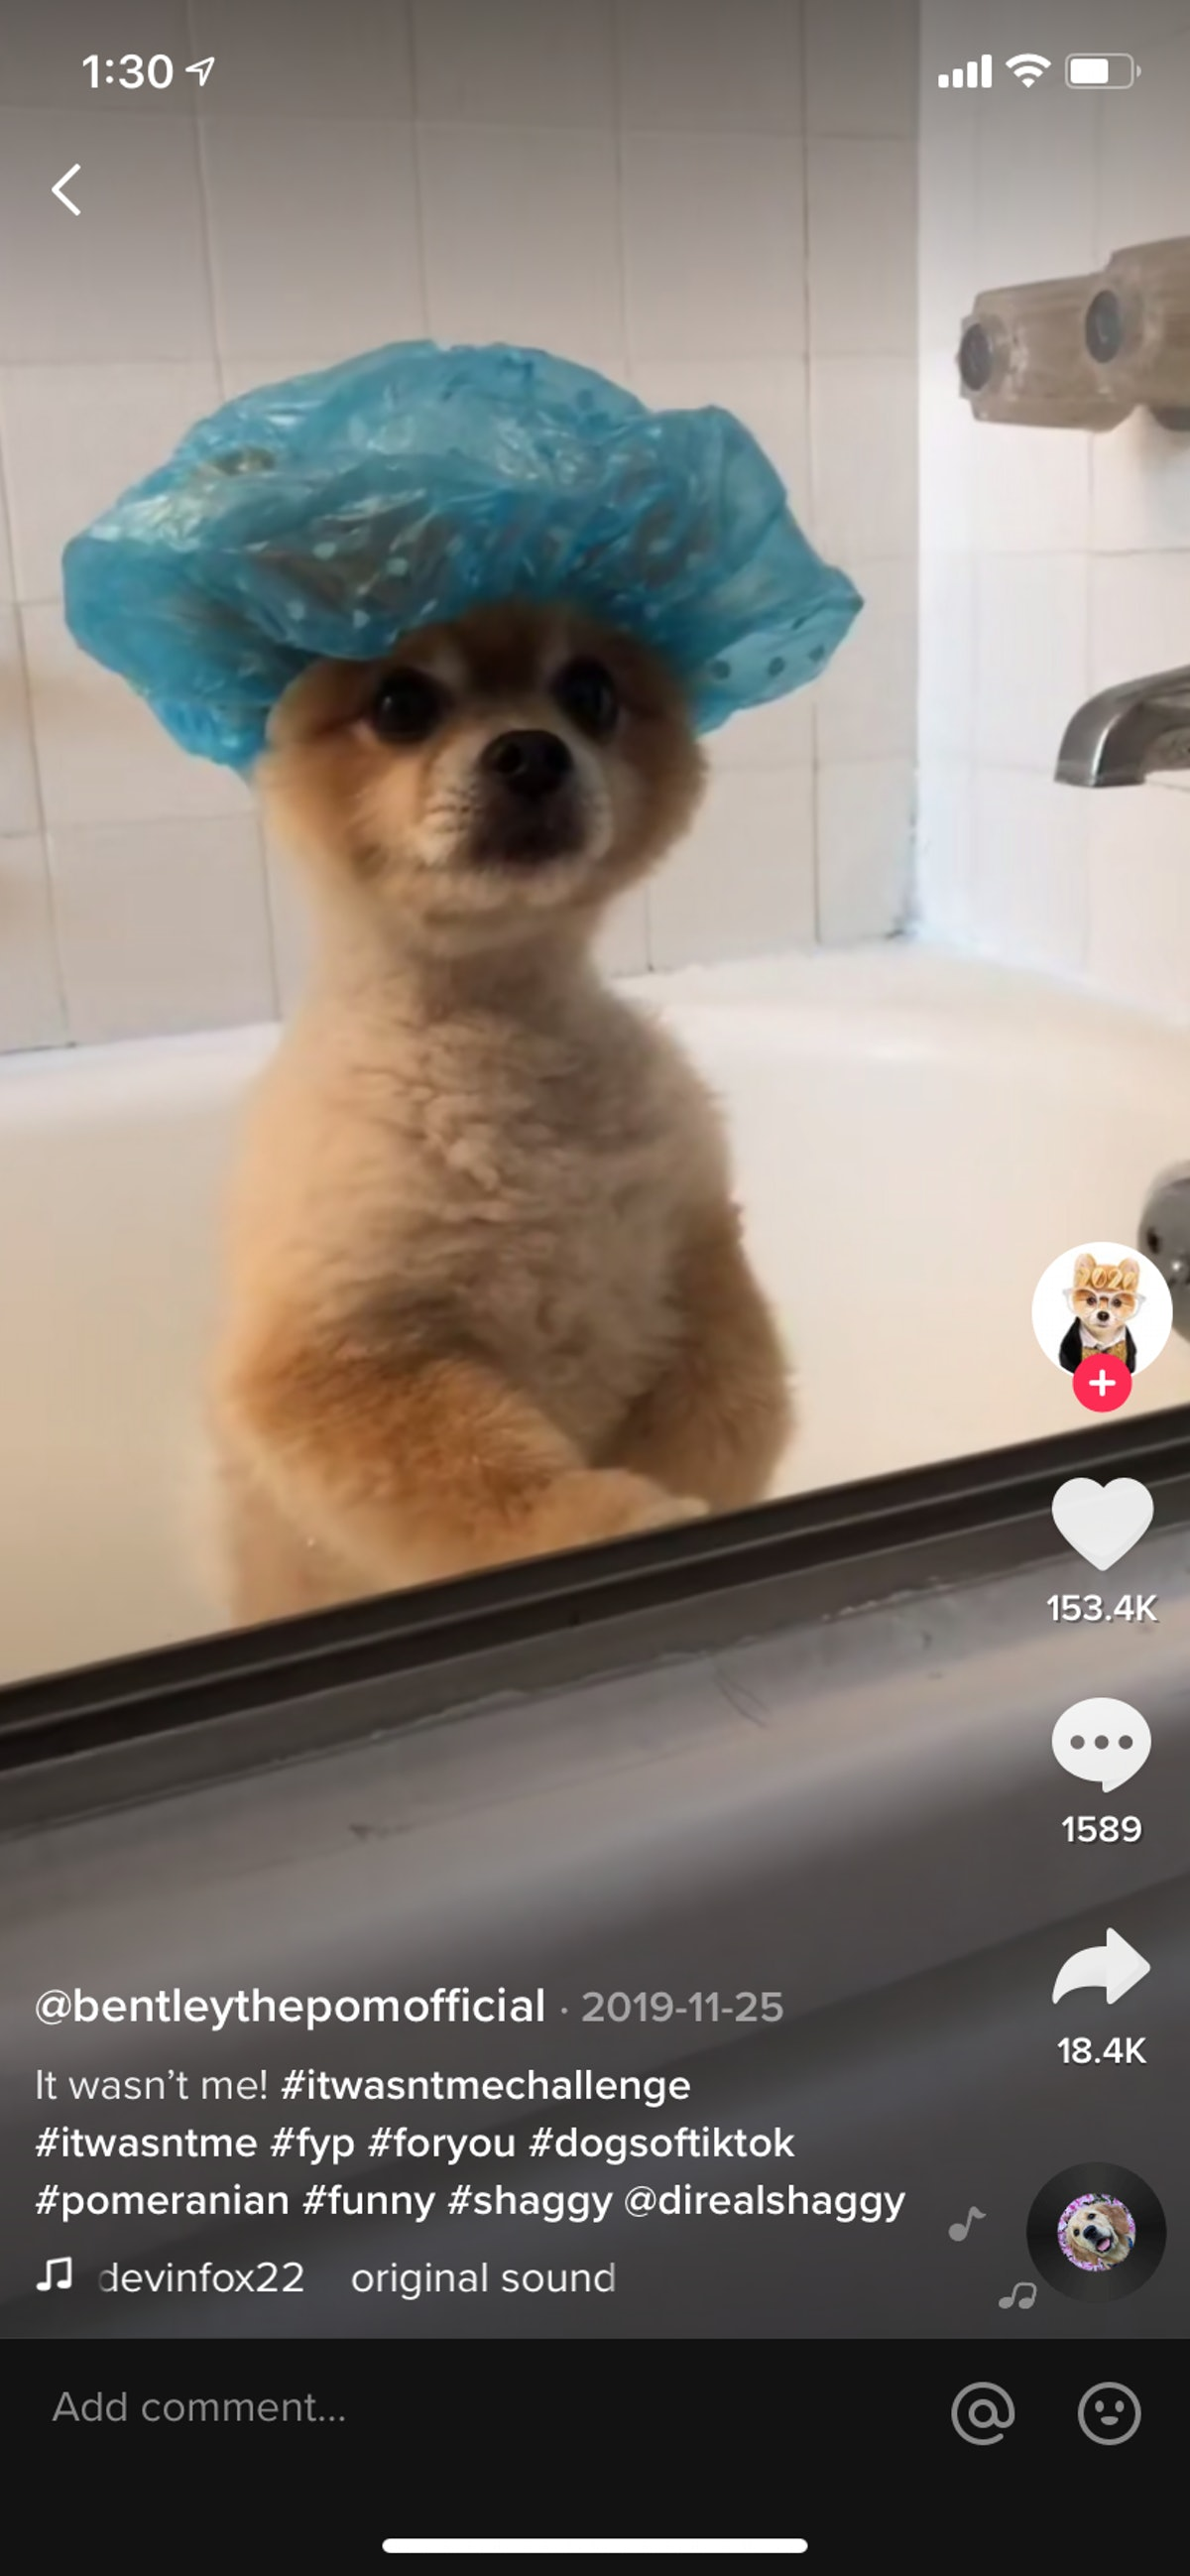 A dog sits in a bathtub while wearing a shower cap and recording a video for TikTok.